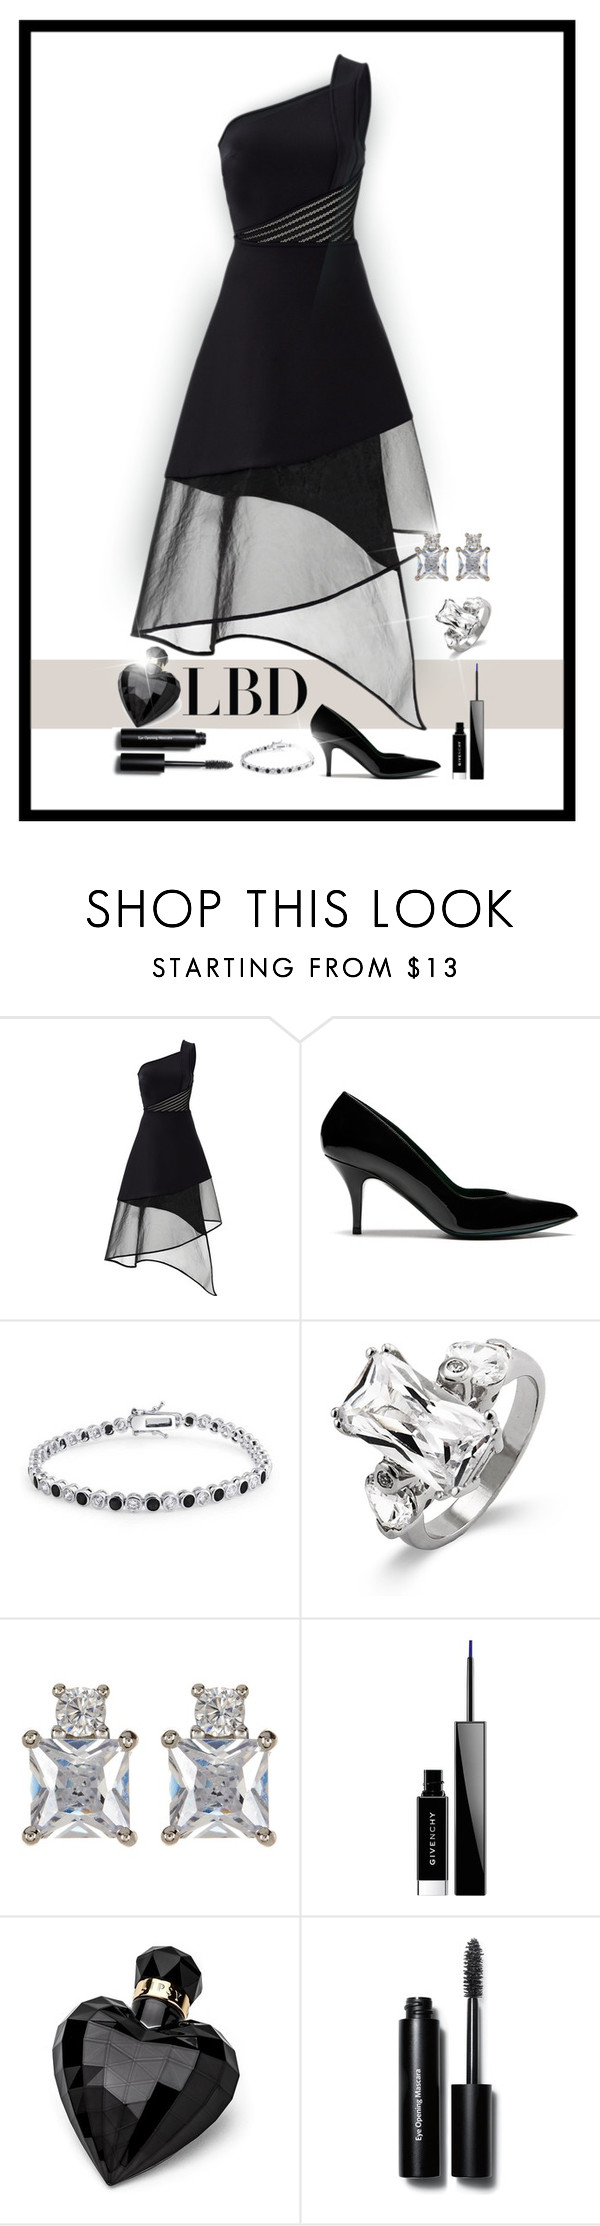 """""""LBD"""" by patricia-dimmick ❤ liked on Polyvore featuring David Koma, Mulberry, Bling Jewelry, Nordstrom Rack, Givenchy, Lipsy, Bobbi Brown Cosmetics, LBD and eveninglook"""